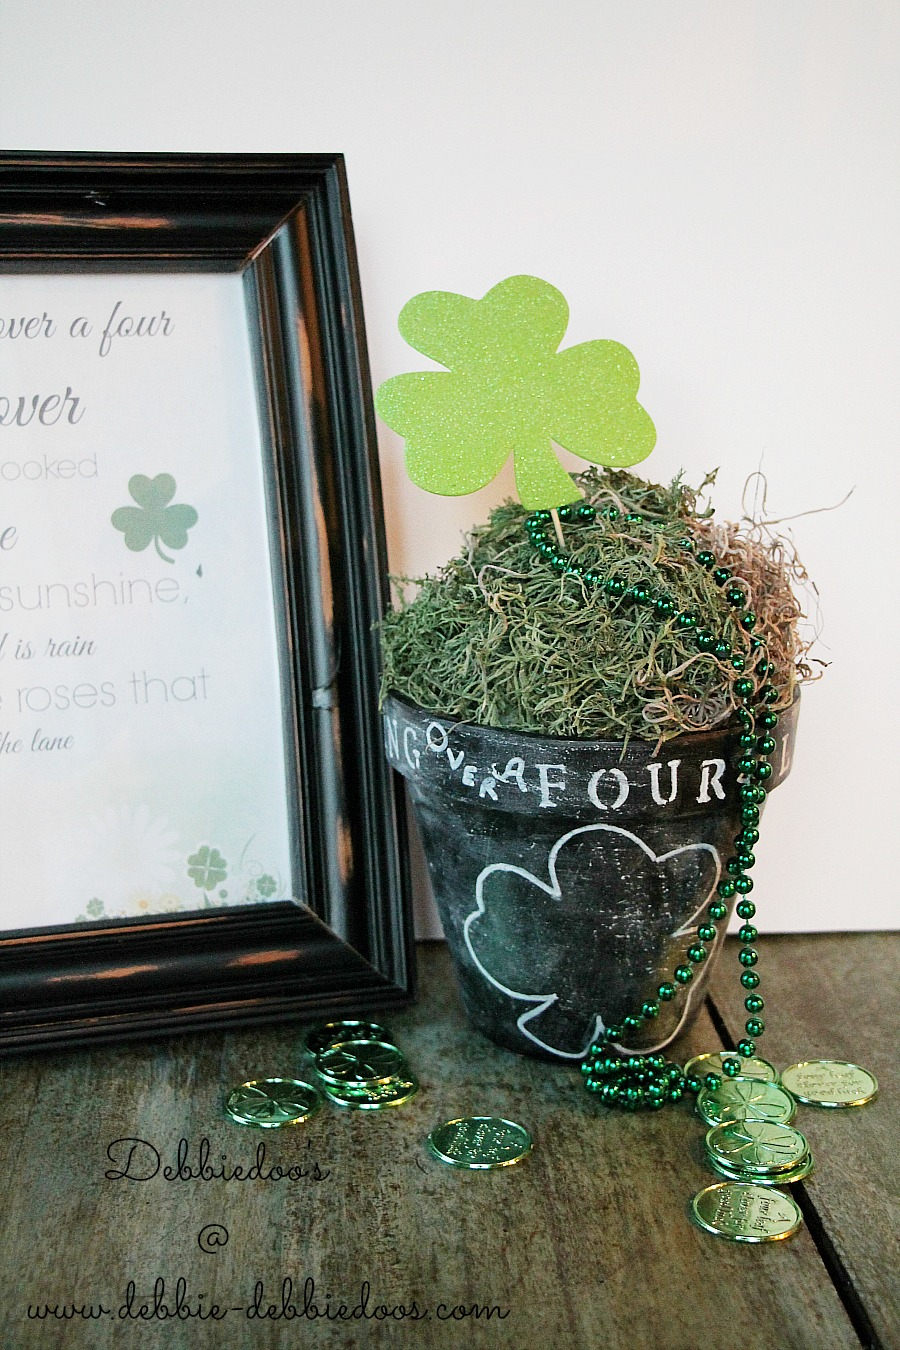 I'm looking over a four leaf clover pot and printable